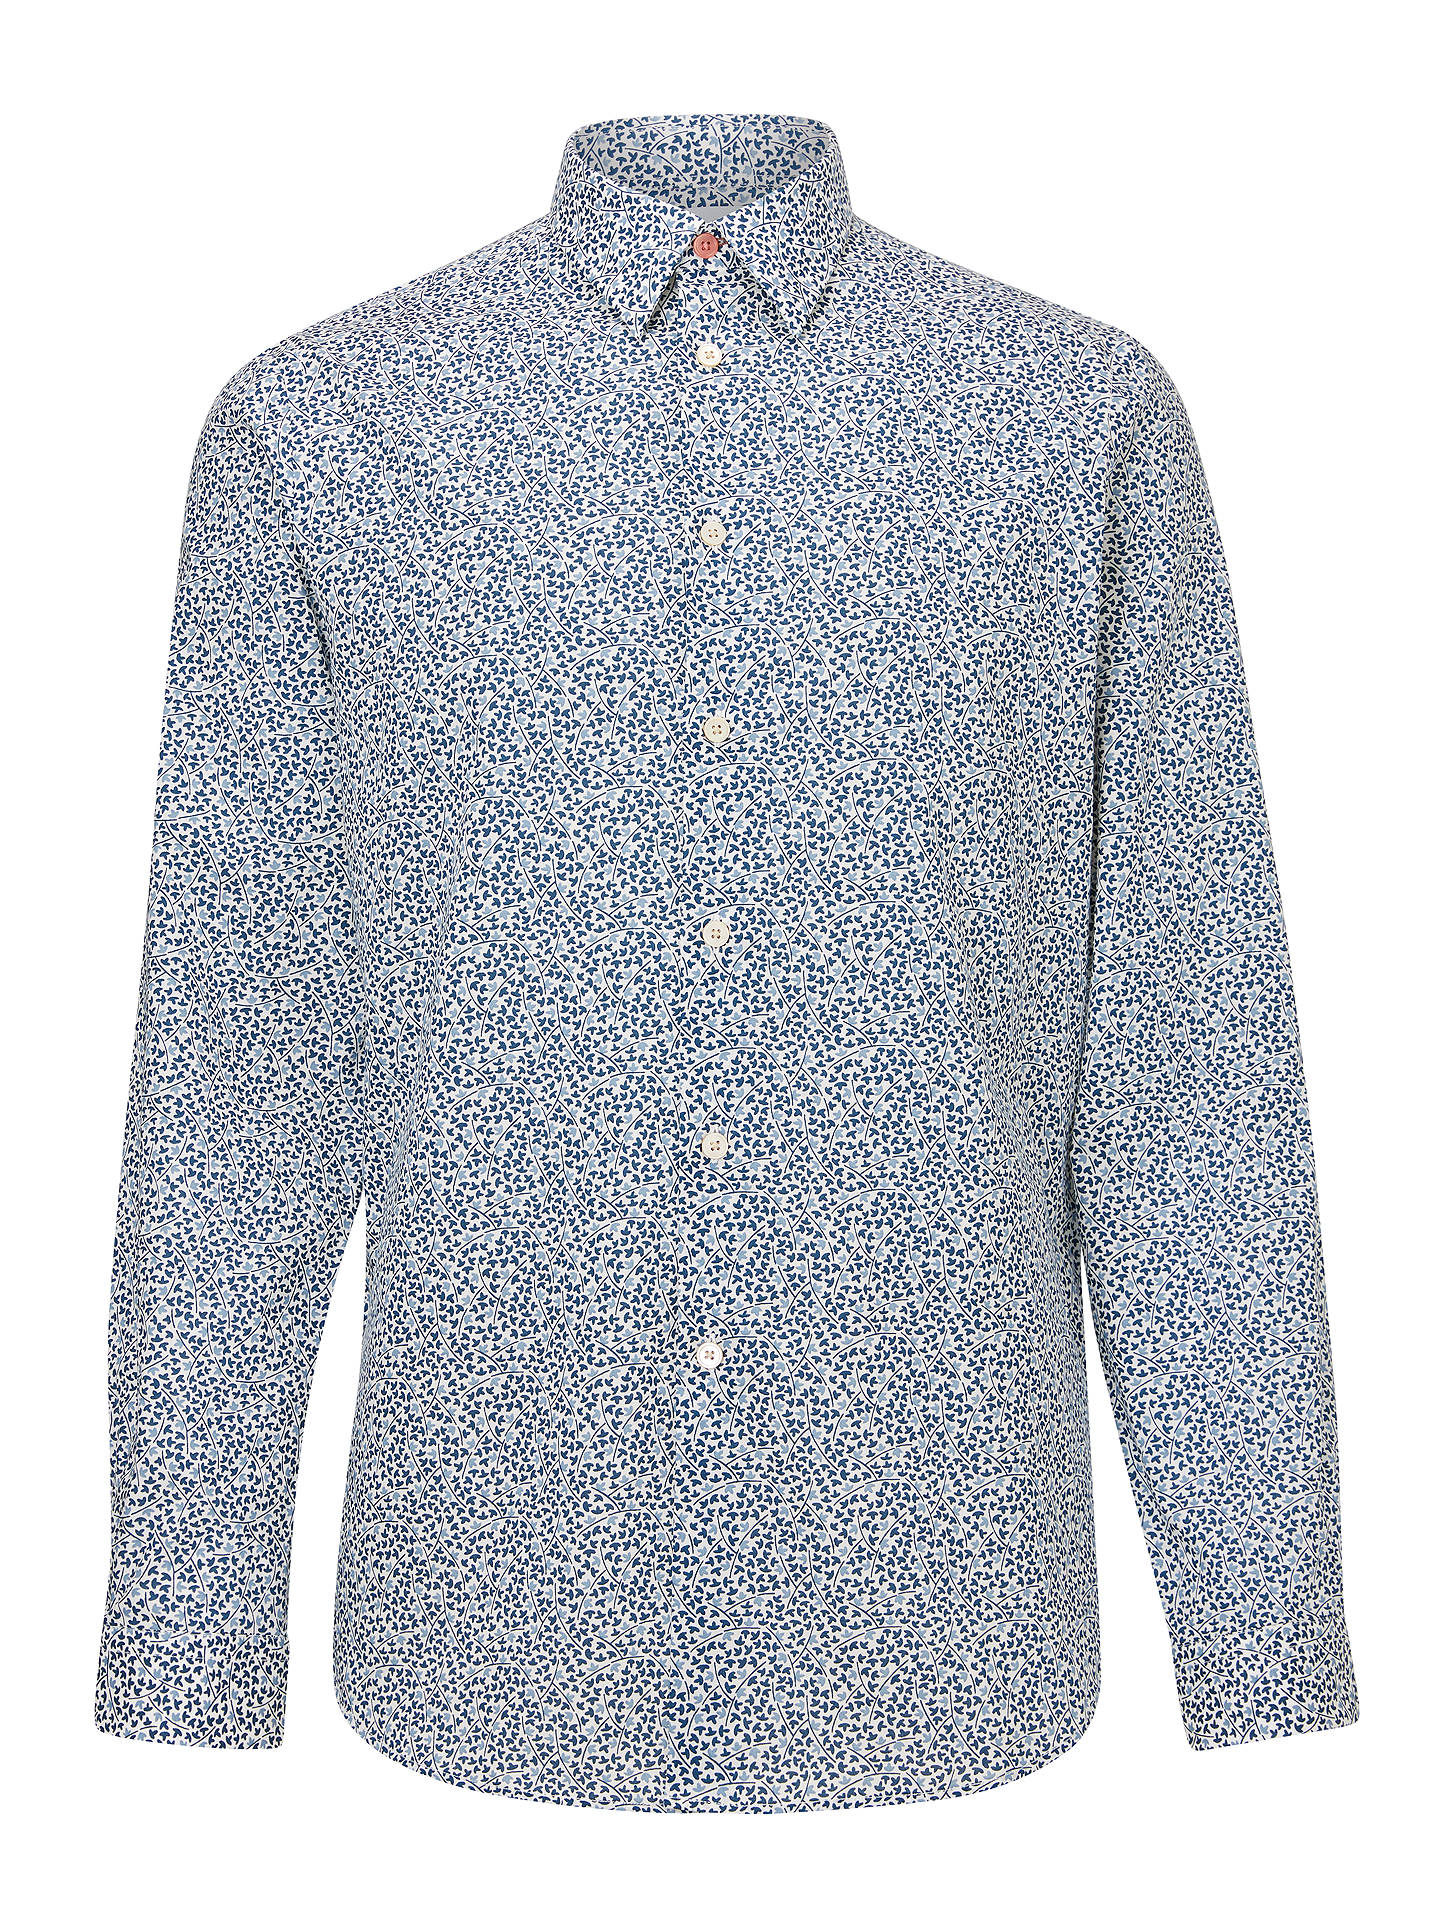 BuyPS Paul Smith Floral Shirt, Navy, 15 Online at johnlewis.com